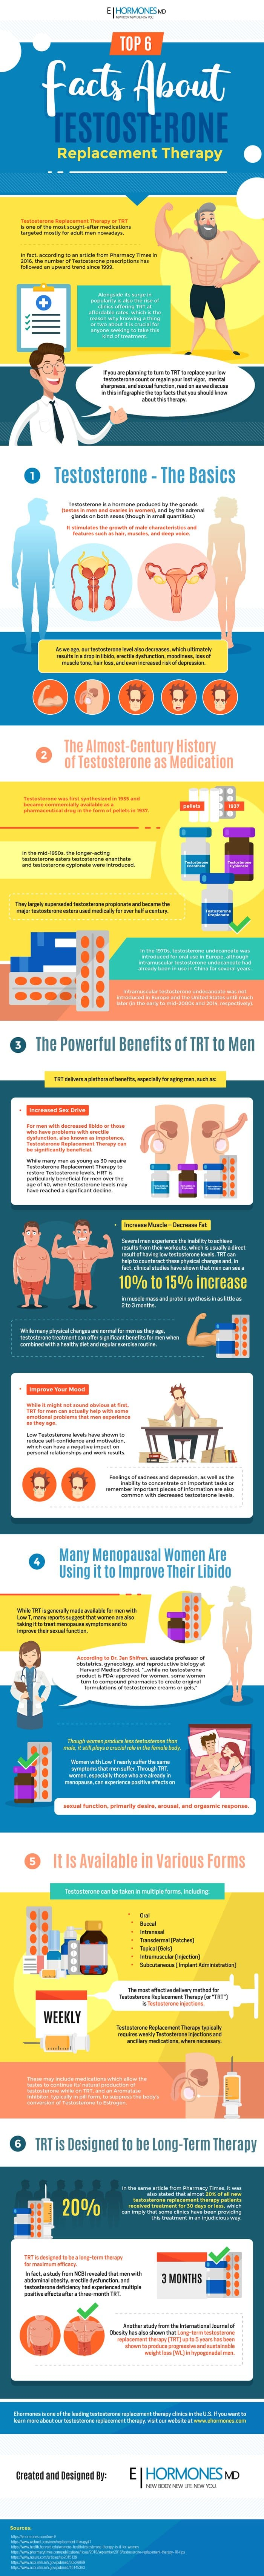 Top 6 Facts about Testosterone Replacement Therapy (Infographic)